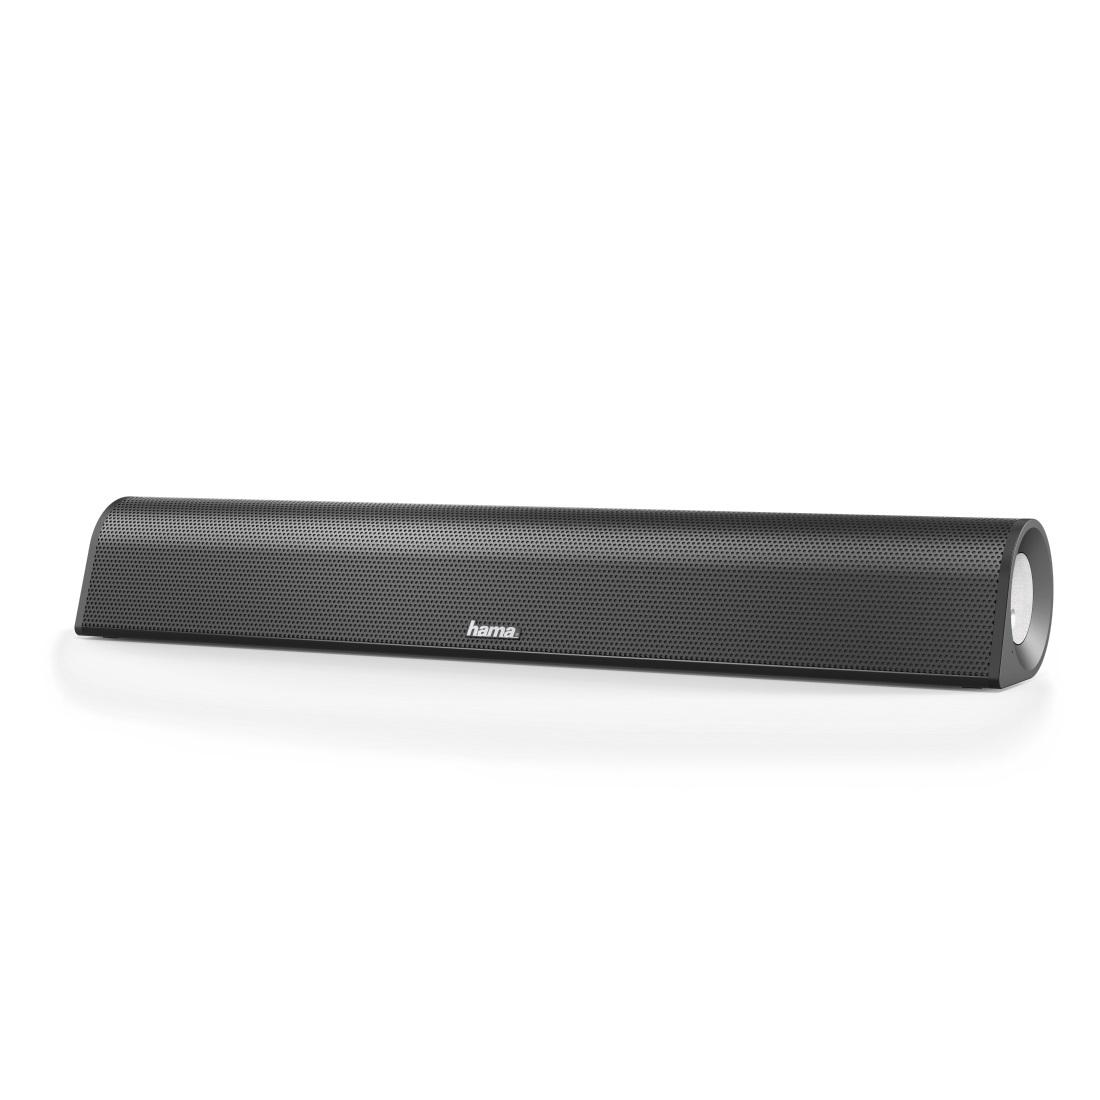 Звукова система HAMA Sonic SB-206, PC Soundbar 2.0, Черен